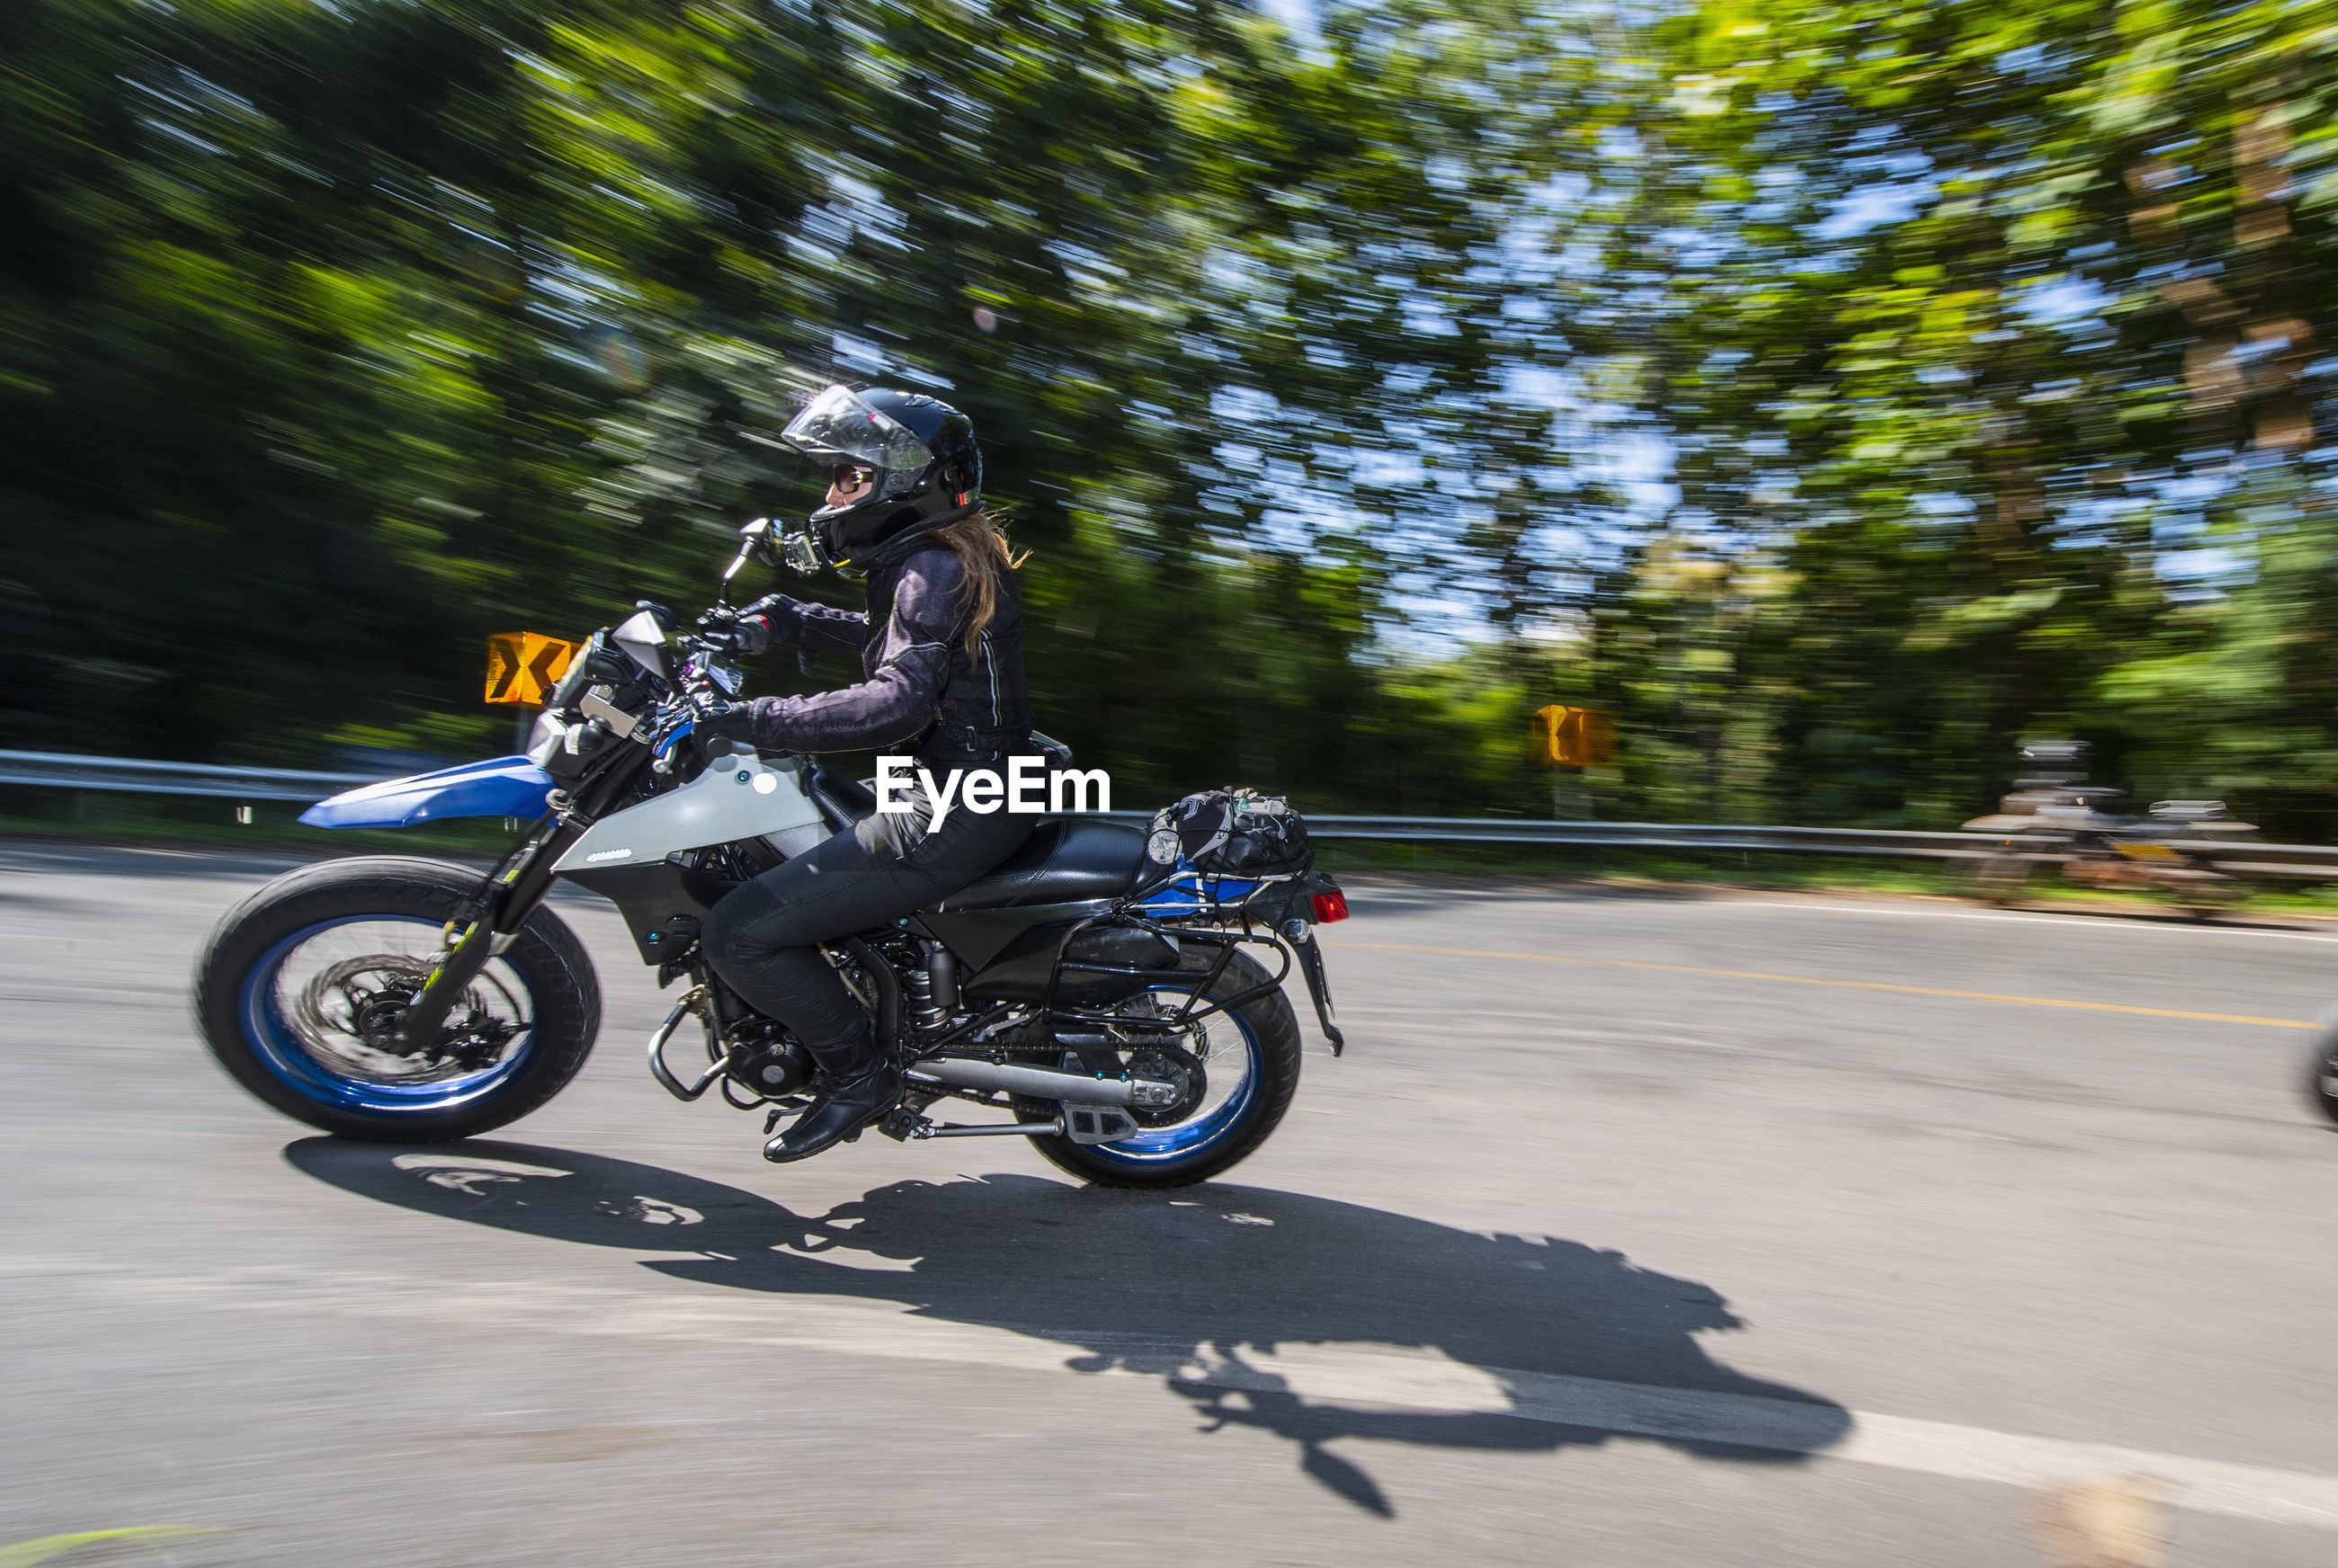 BICYCLES RIDING MOTORCYCLE ON ROAD